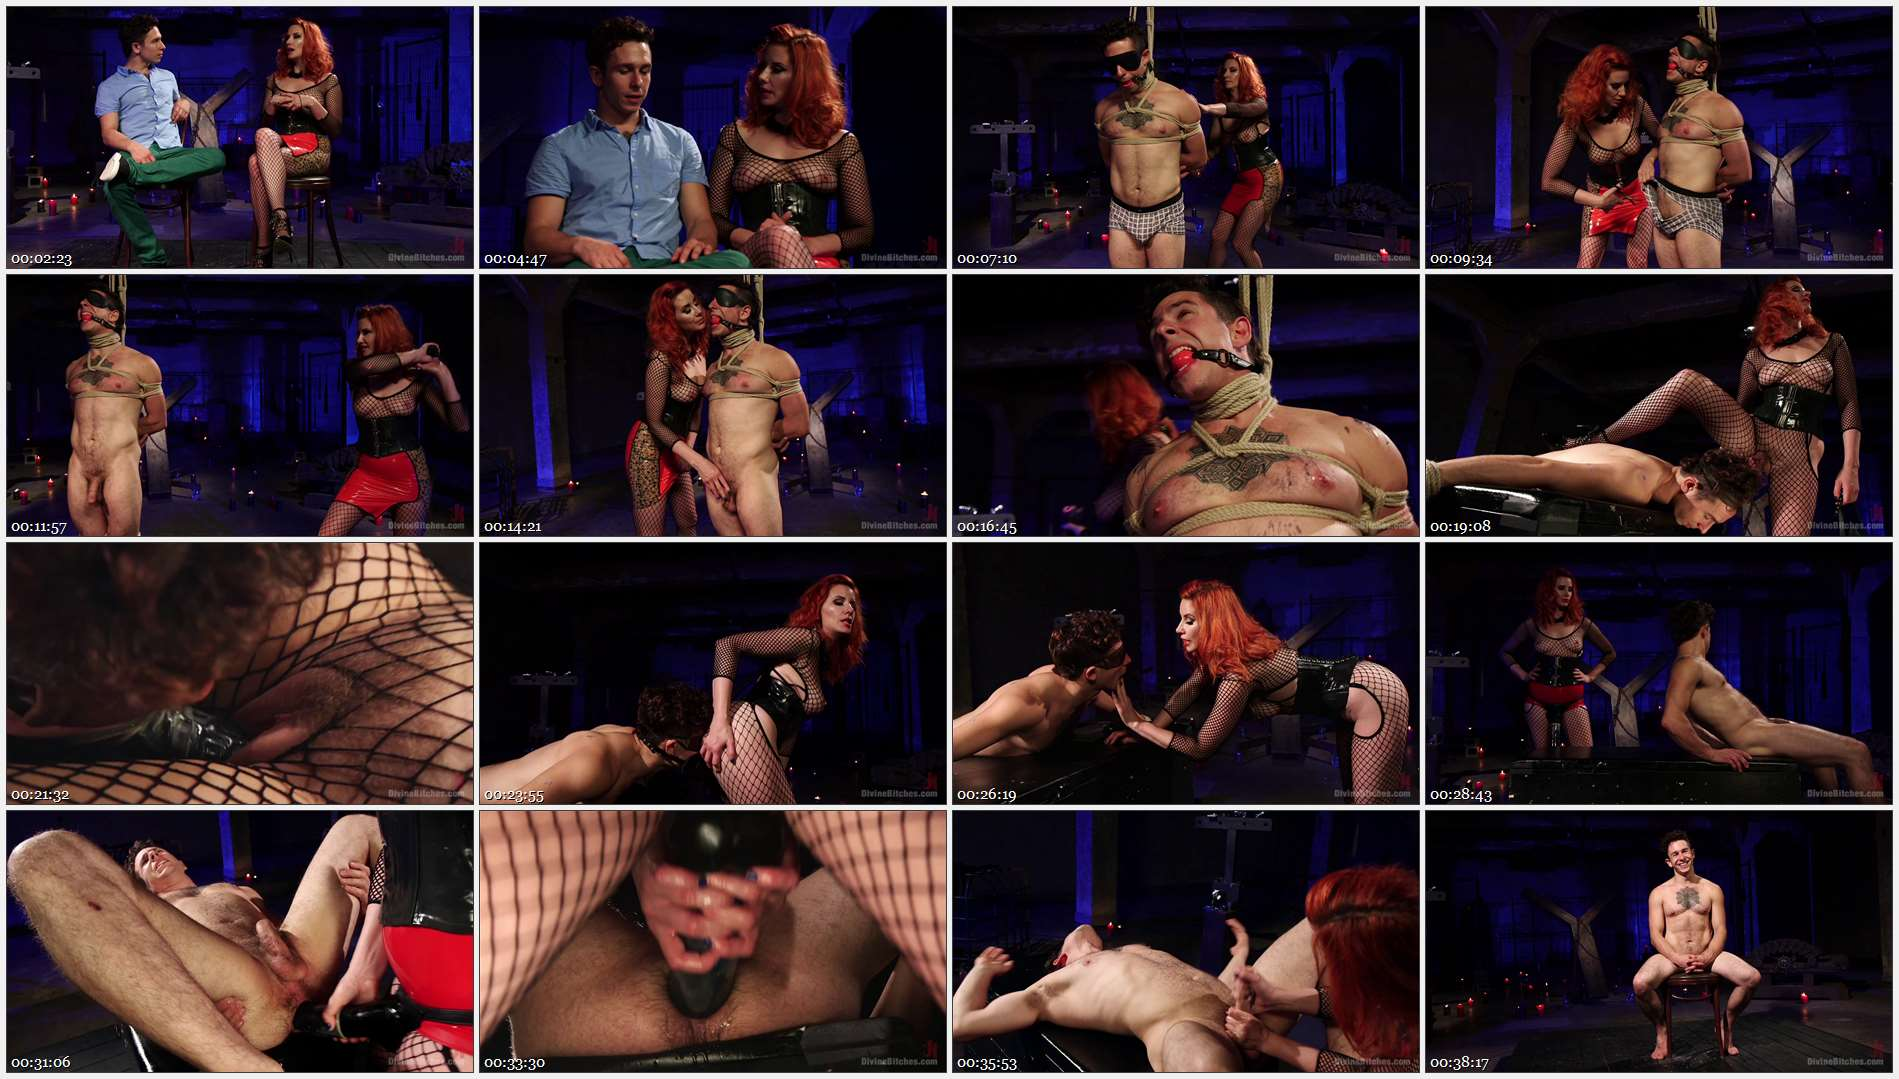 Maitresse Madeline Marlowe – Corbin Dallas – The Maitresse Milks Virgin Prostate and Punishes Dripping Cock! 